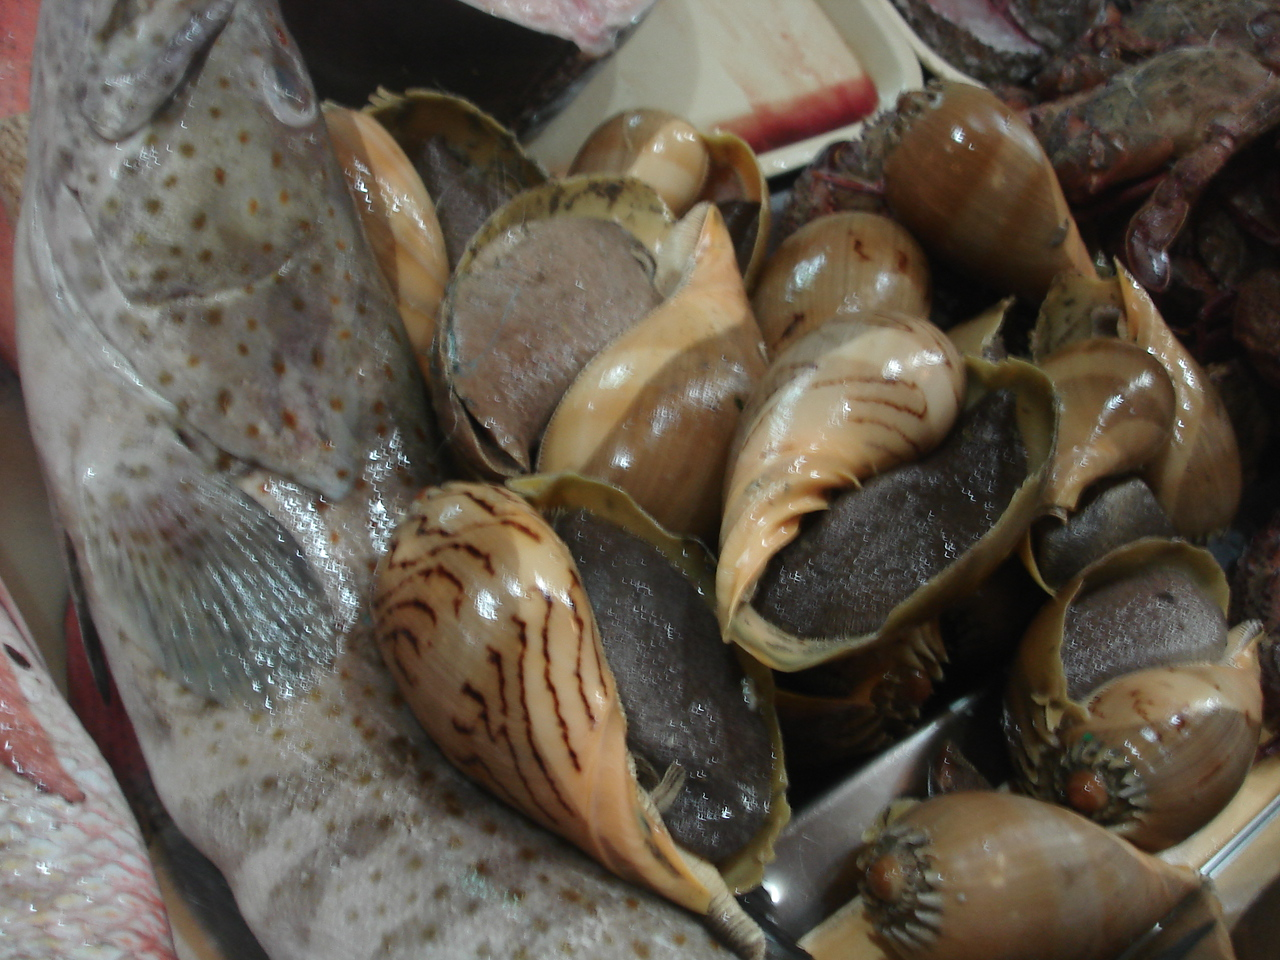 The waiters call these shellfish Dila-dila or tongue shells because they look like huge black tongues.